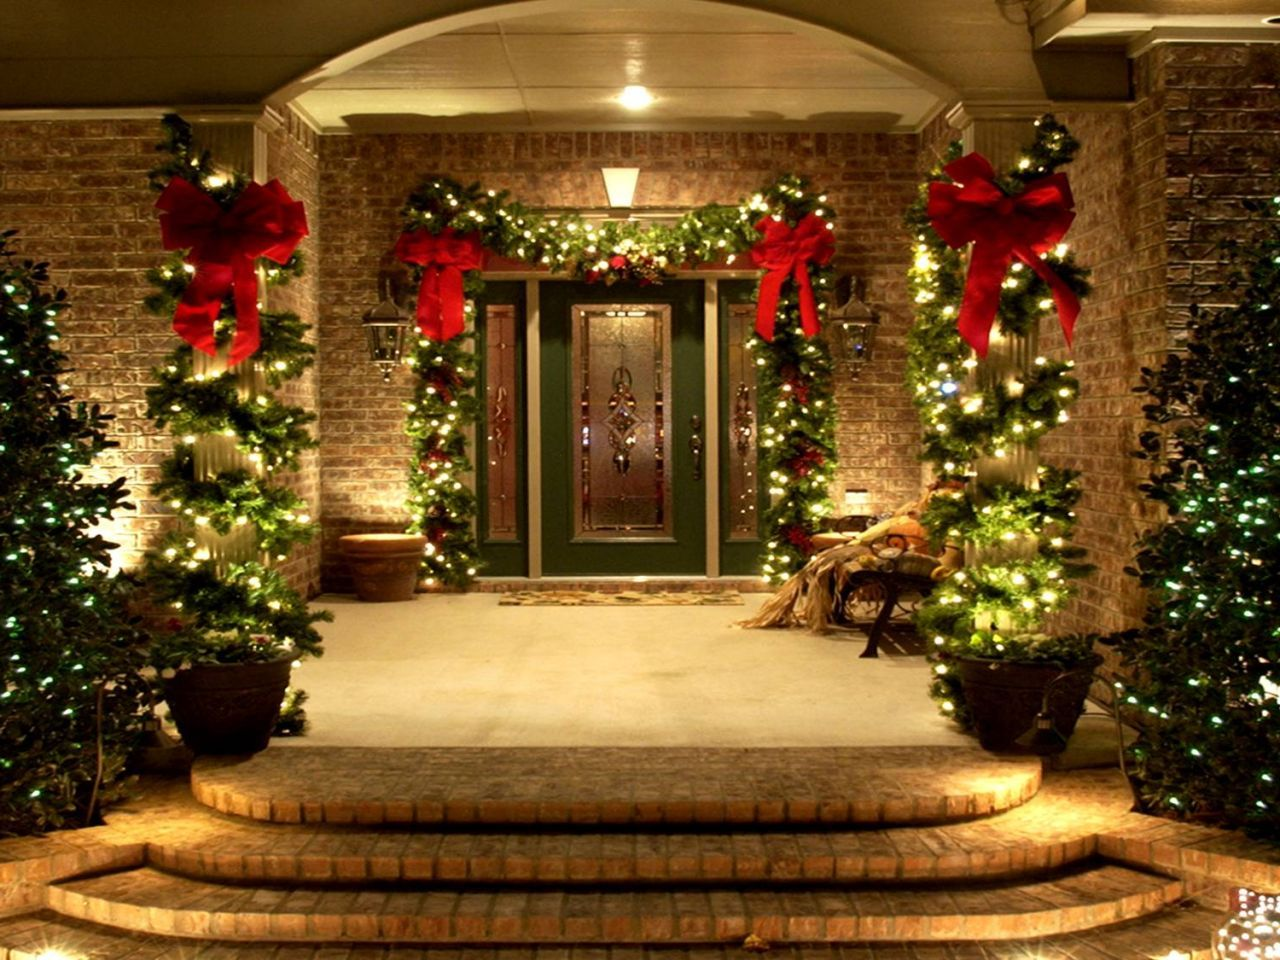 Outdoor Wall Christmas Decorations Use Of Lighting And Decorative Plants To The Outdoor For